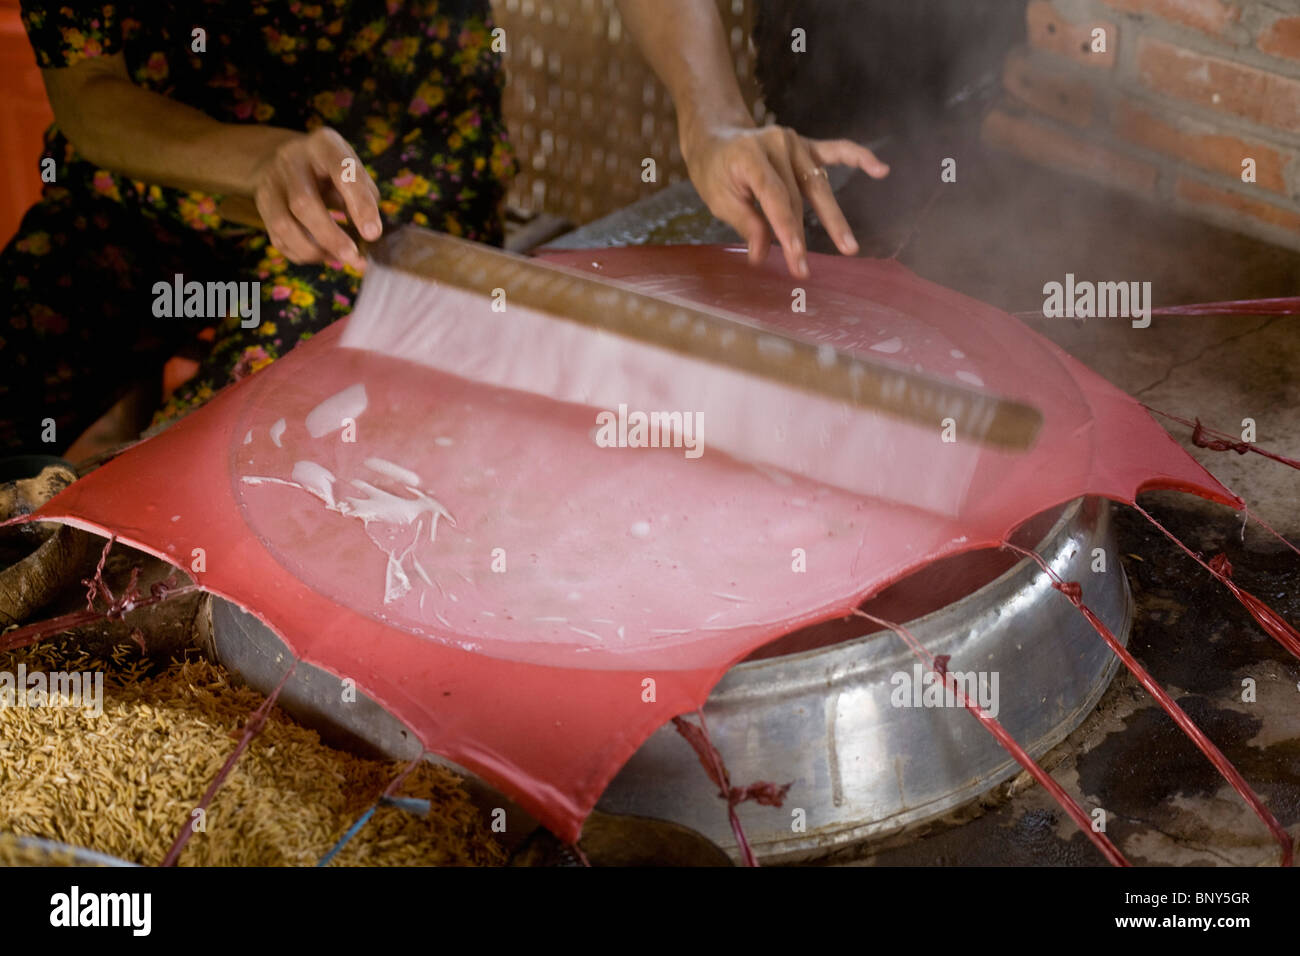 Steaming a sheet of rice paper - Stock Image